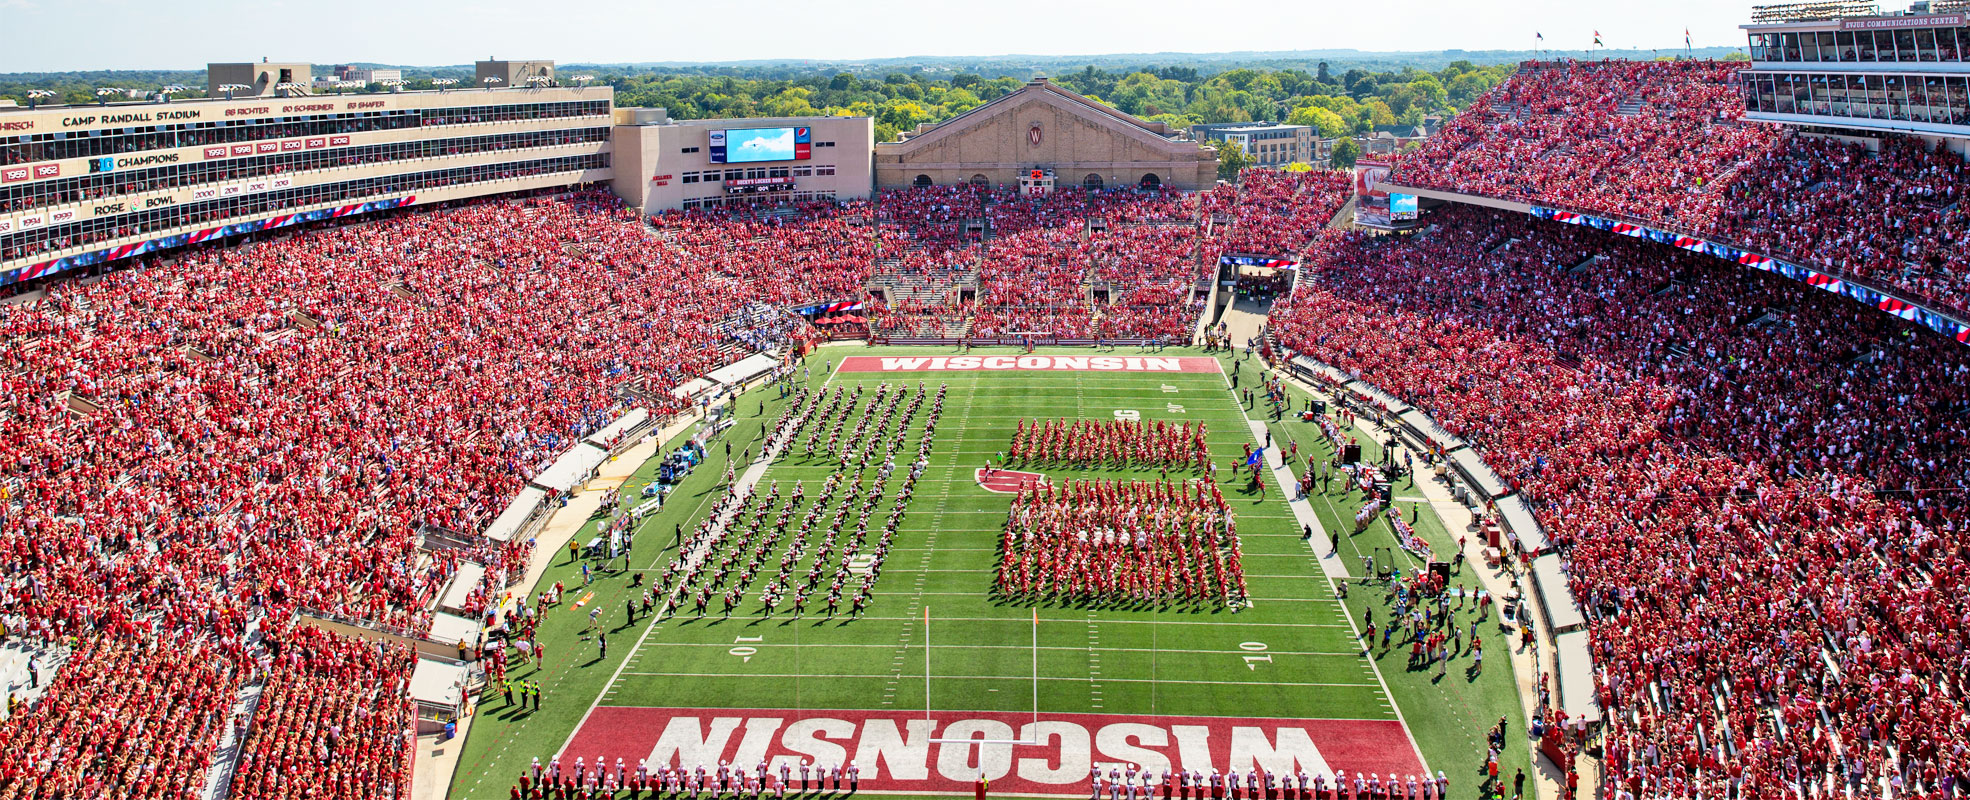 Camp Randall Stadium On a Game Day During the Day with the Marching Band on the Field